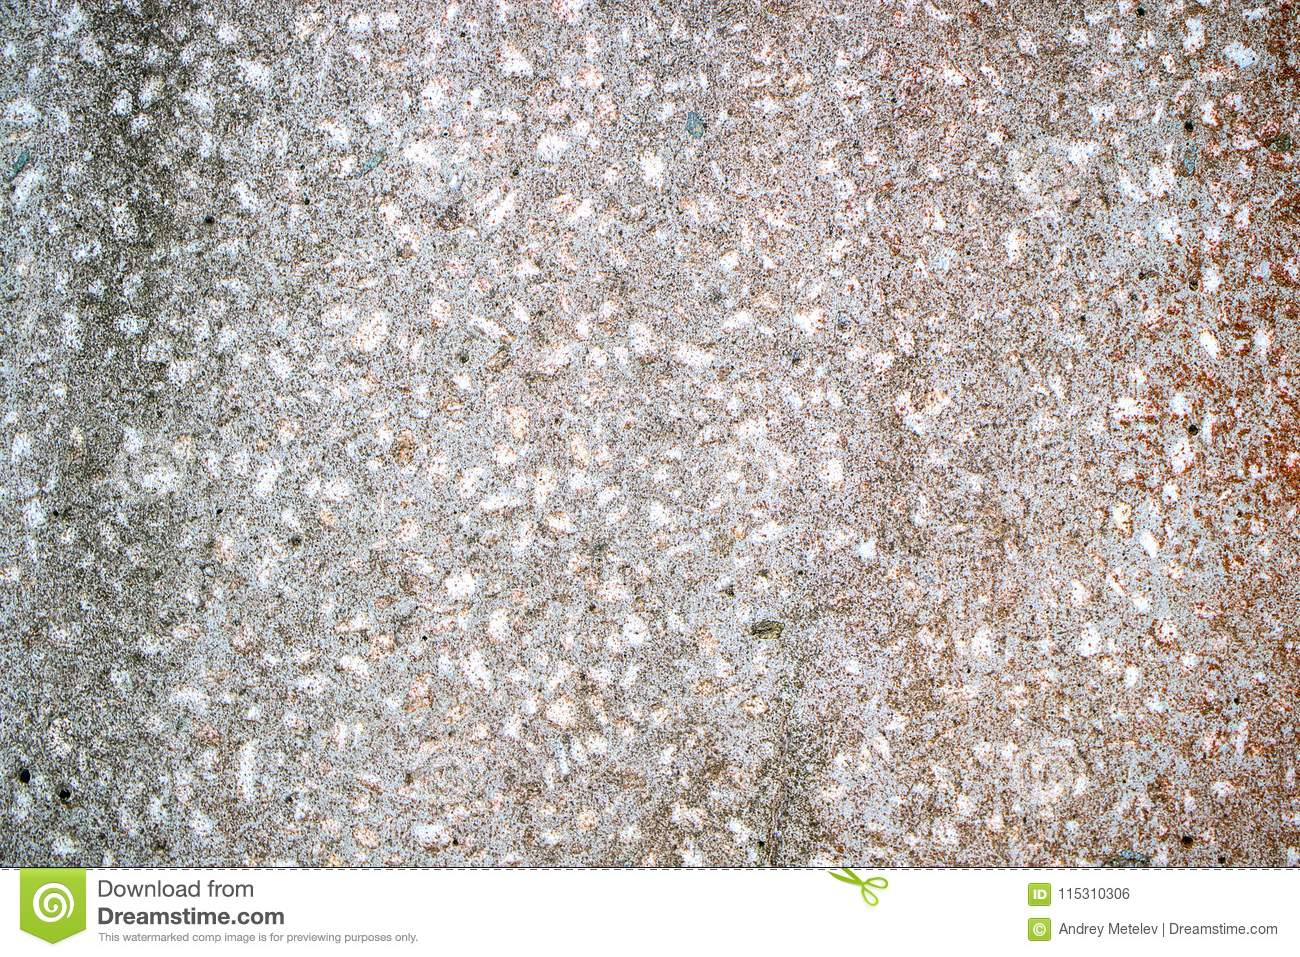 An Old Stone Slab With Small Stones Of Granite, Gray With